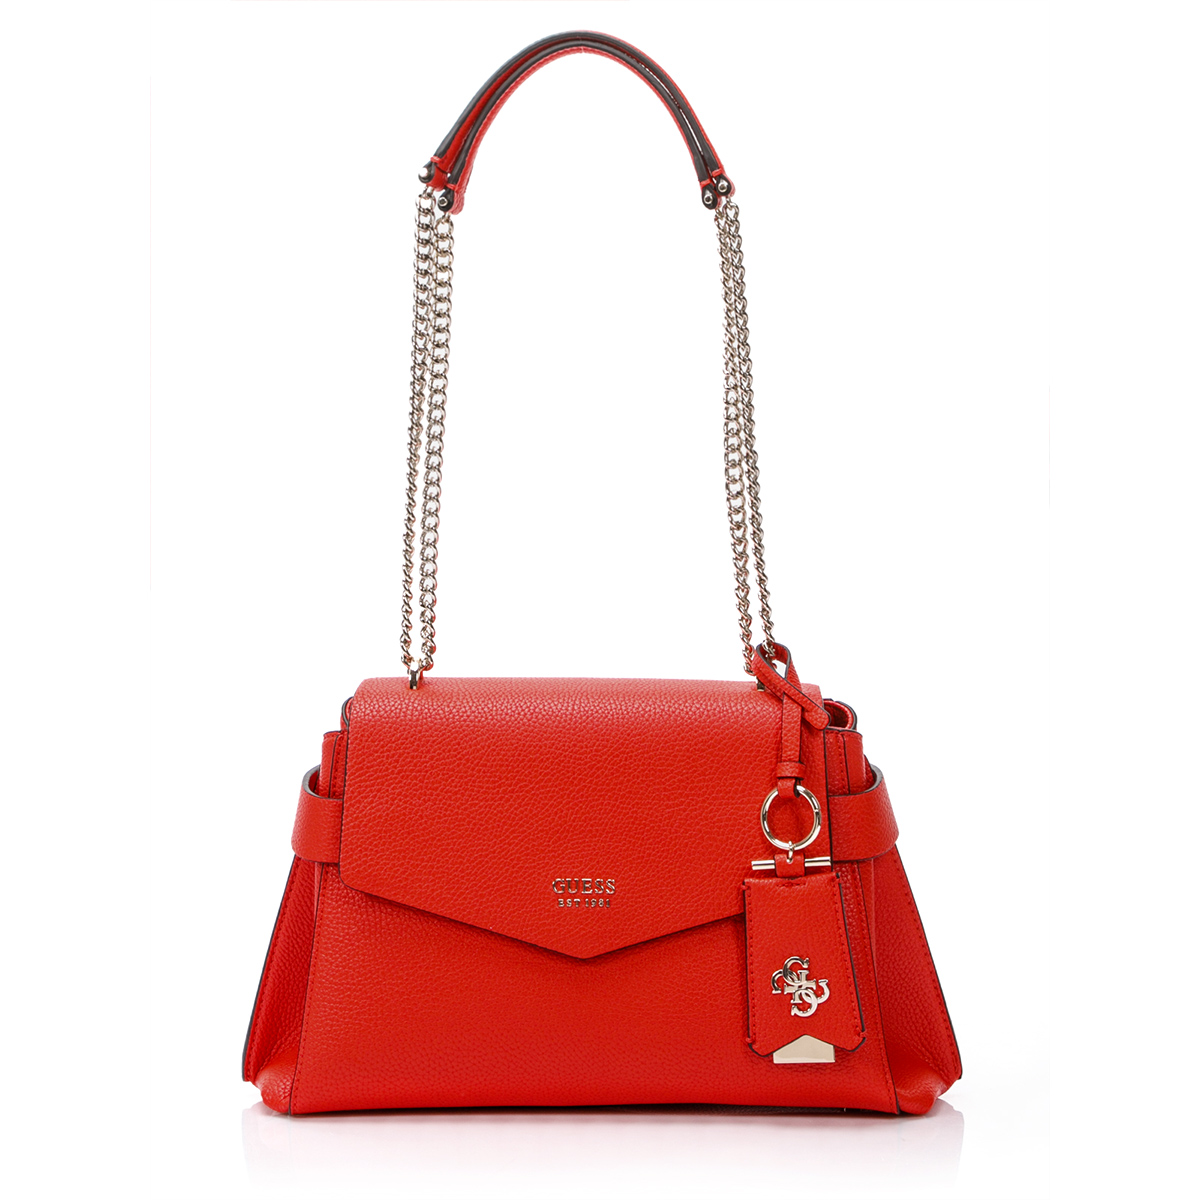 COLETTE SHOULDER BAG TOM